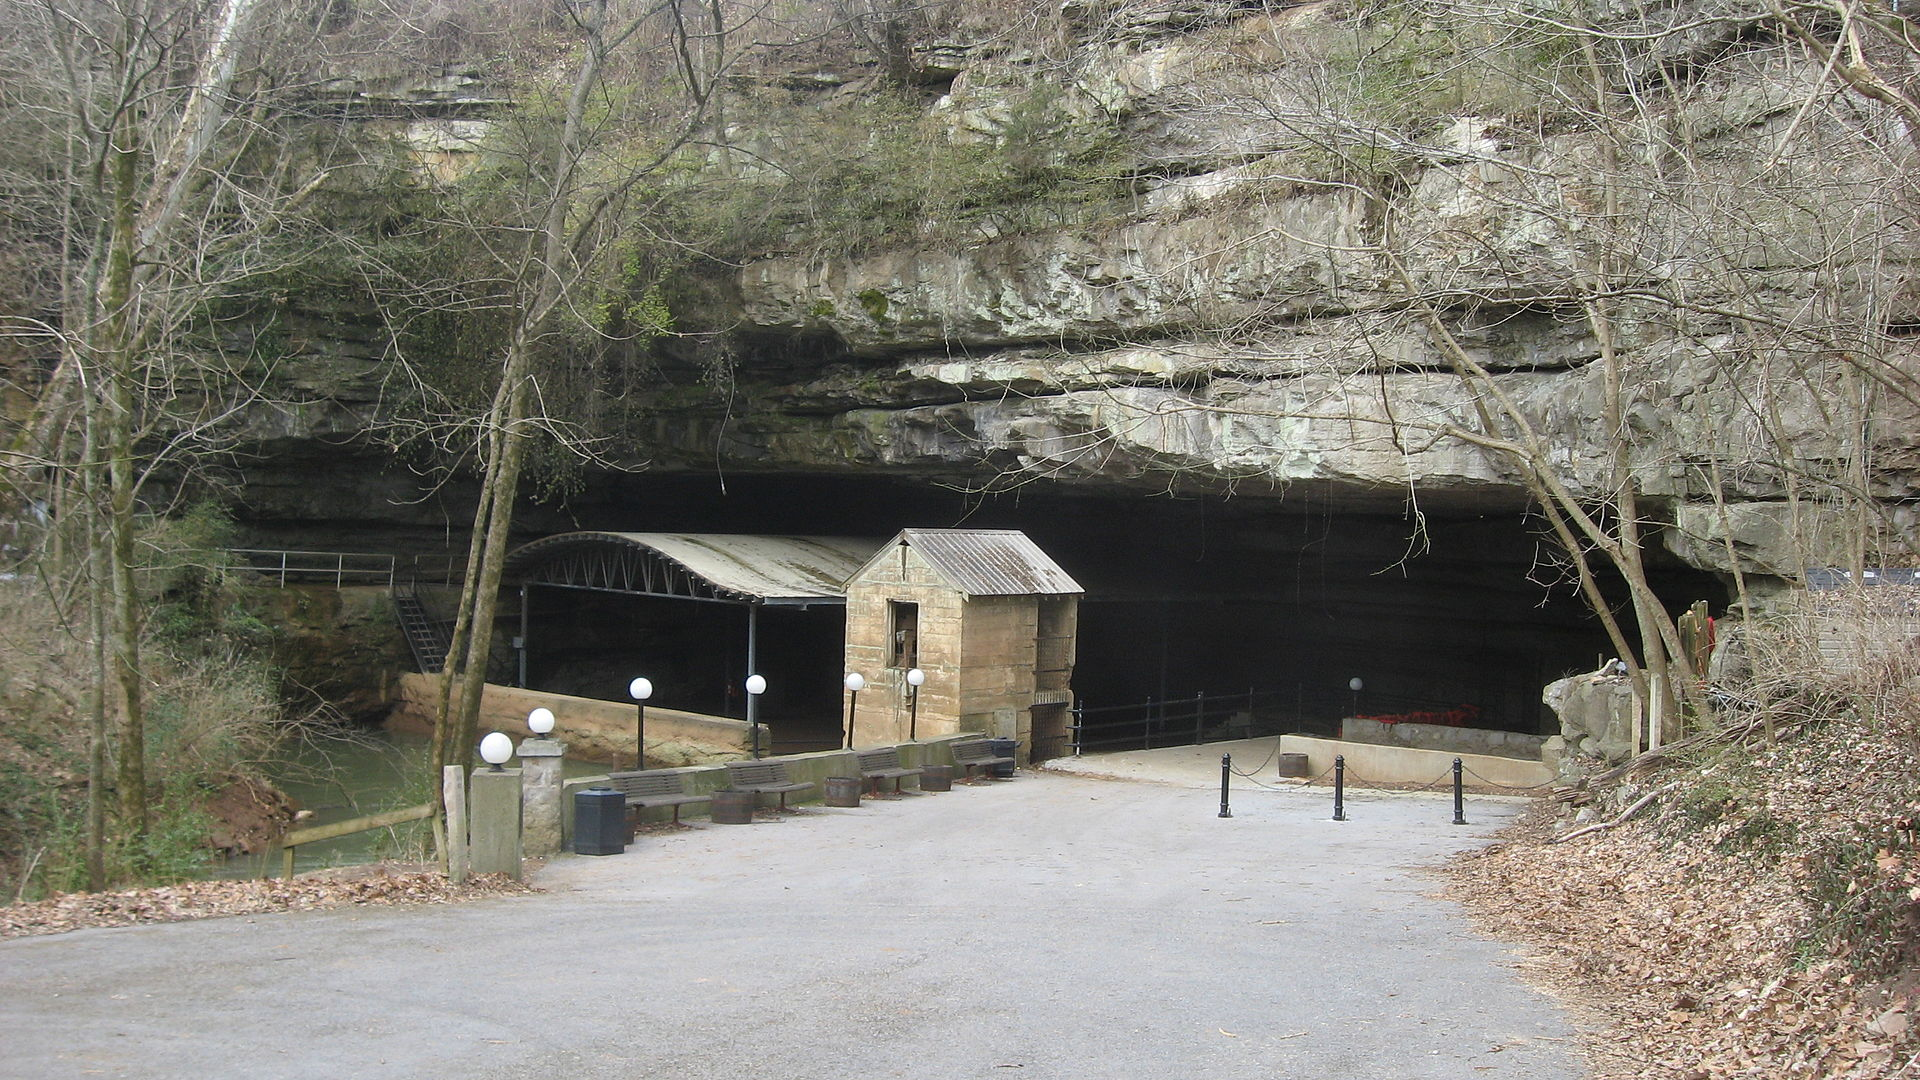 Entrance to Lost River Cave